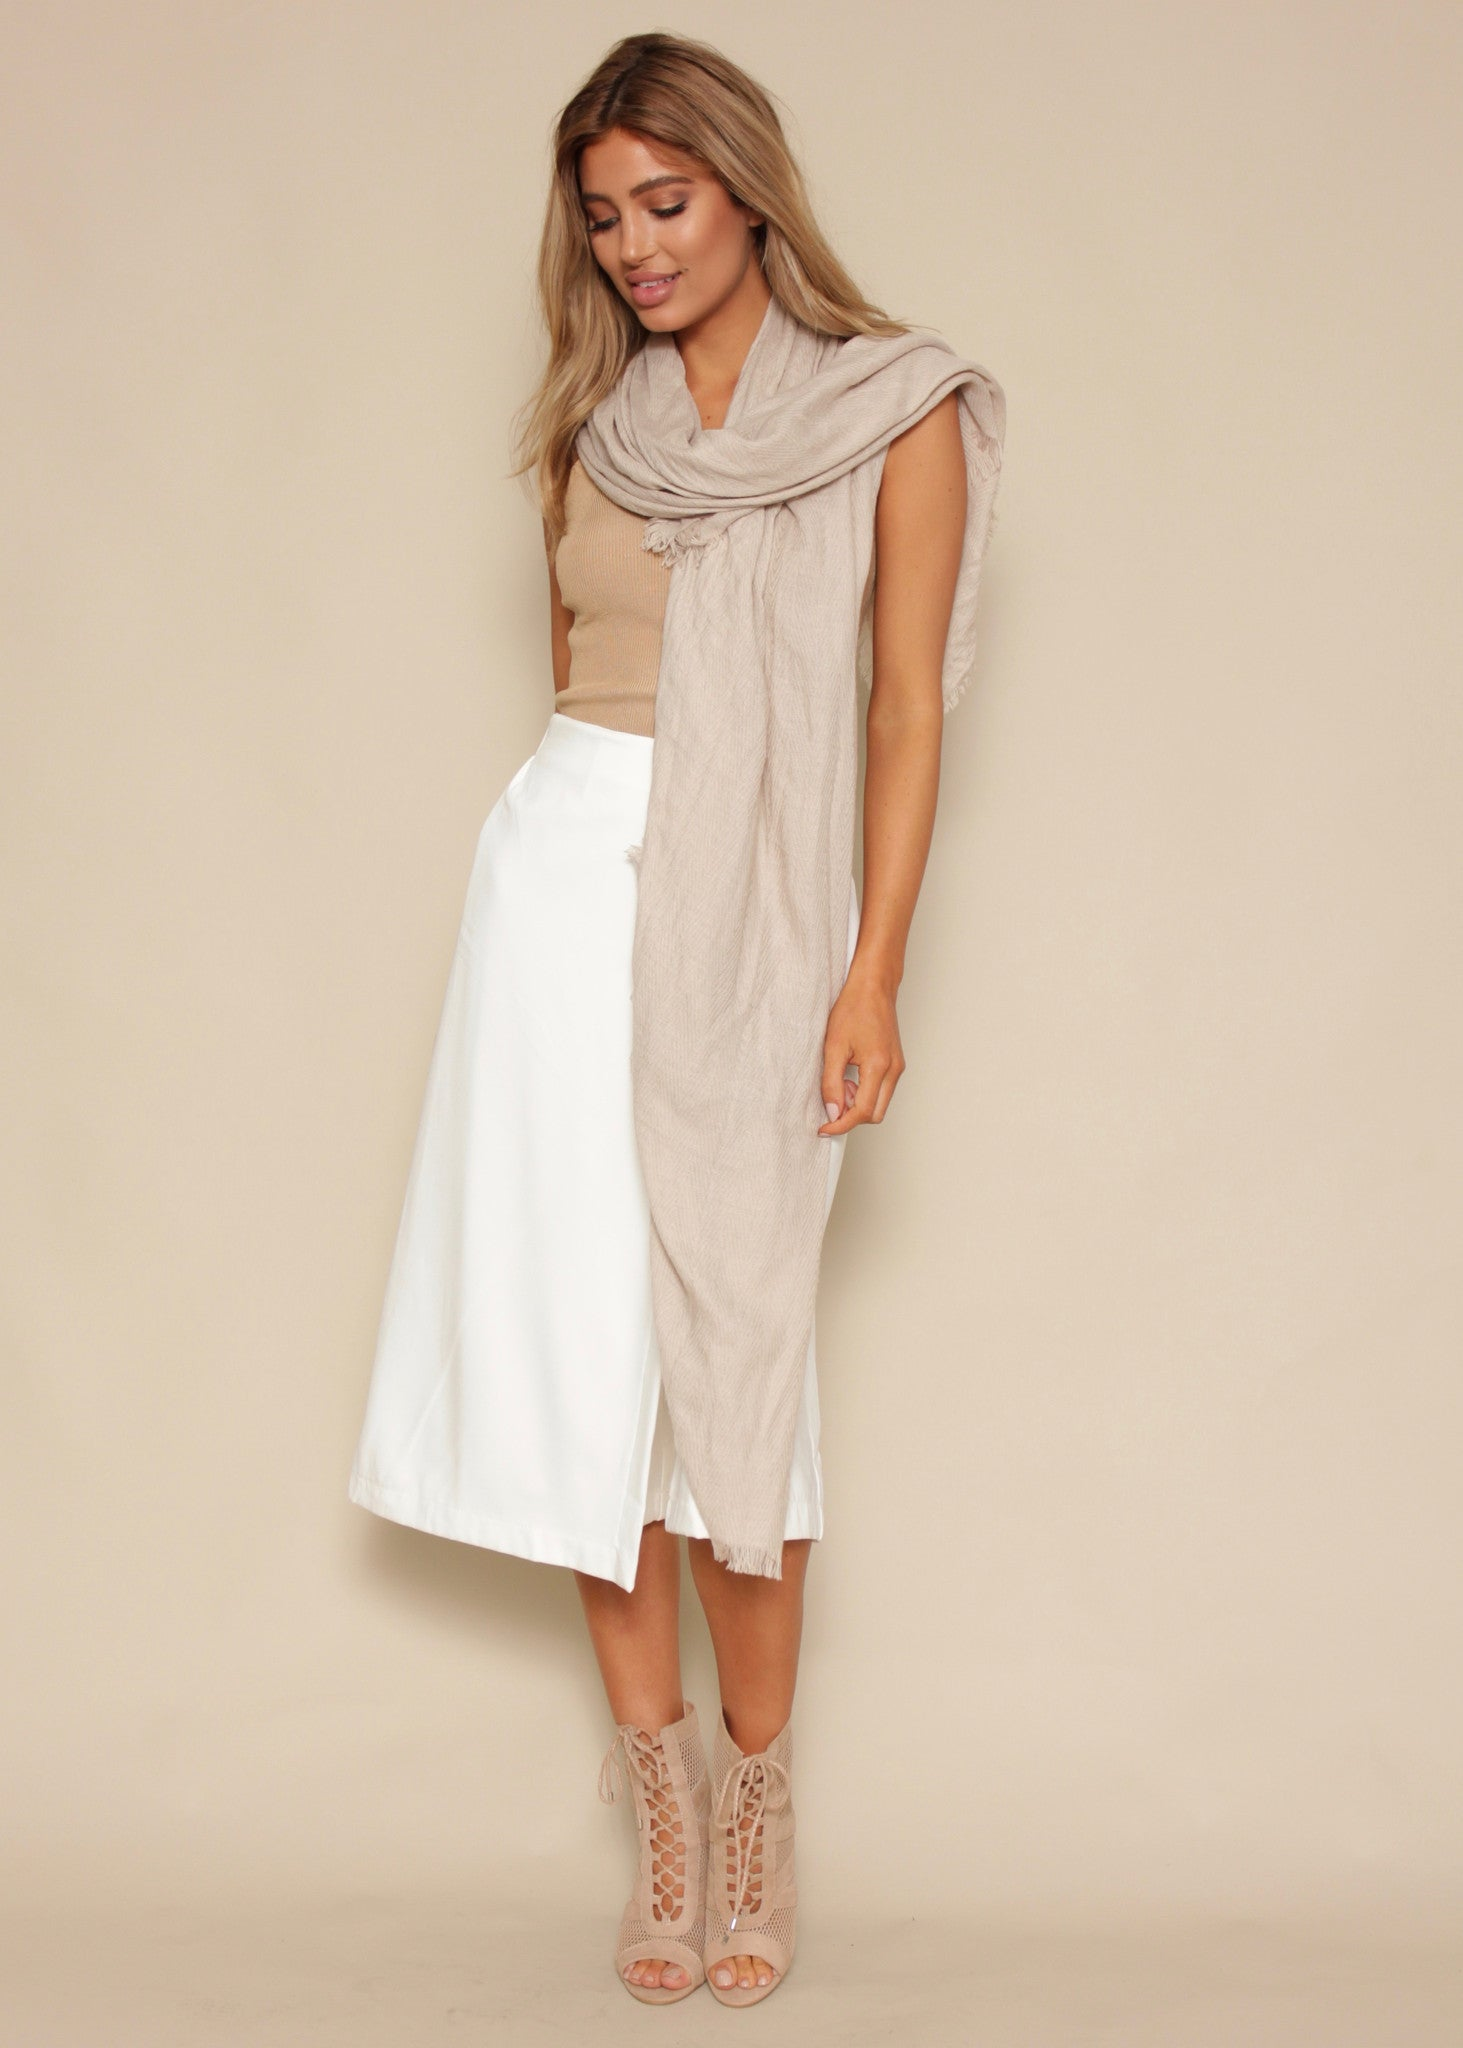 Two Of Us Culottes - White